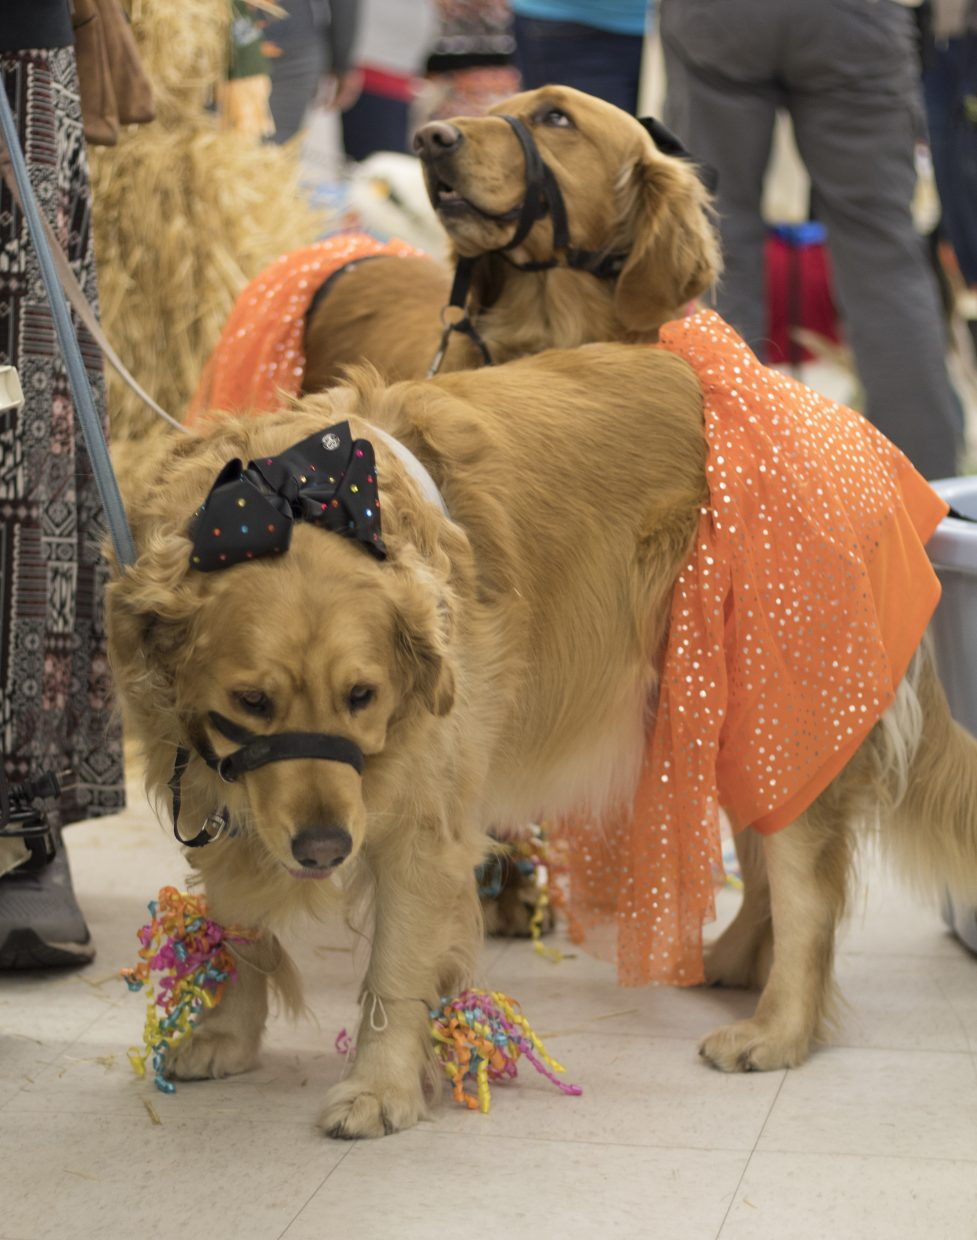 Sally and Rio show off their costumes Saturday at Murdoch's Ranch and Home Supply's annual Growl-O-Ween event, in which residents were invited to dress their furry friends — and themselves — in costume for the chance to win a $100 Murdoch's gift card. Sally and Rio are owned by Cathy Pearson.